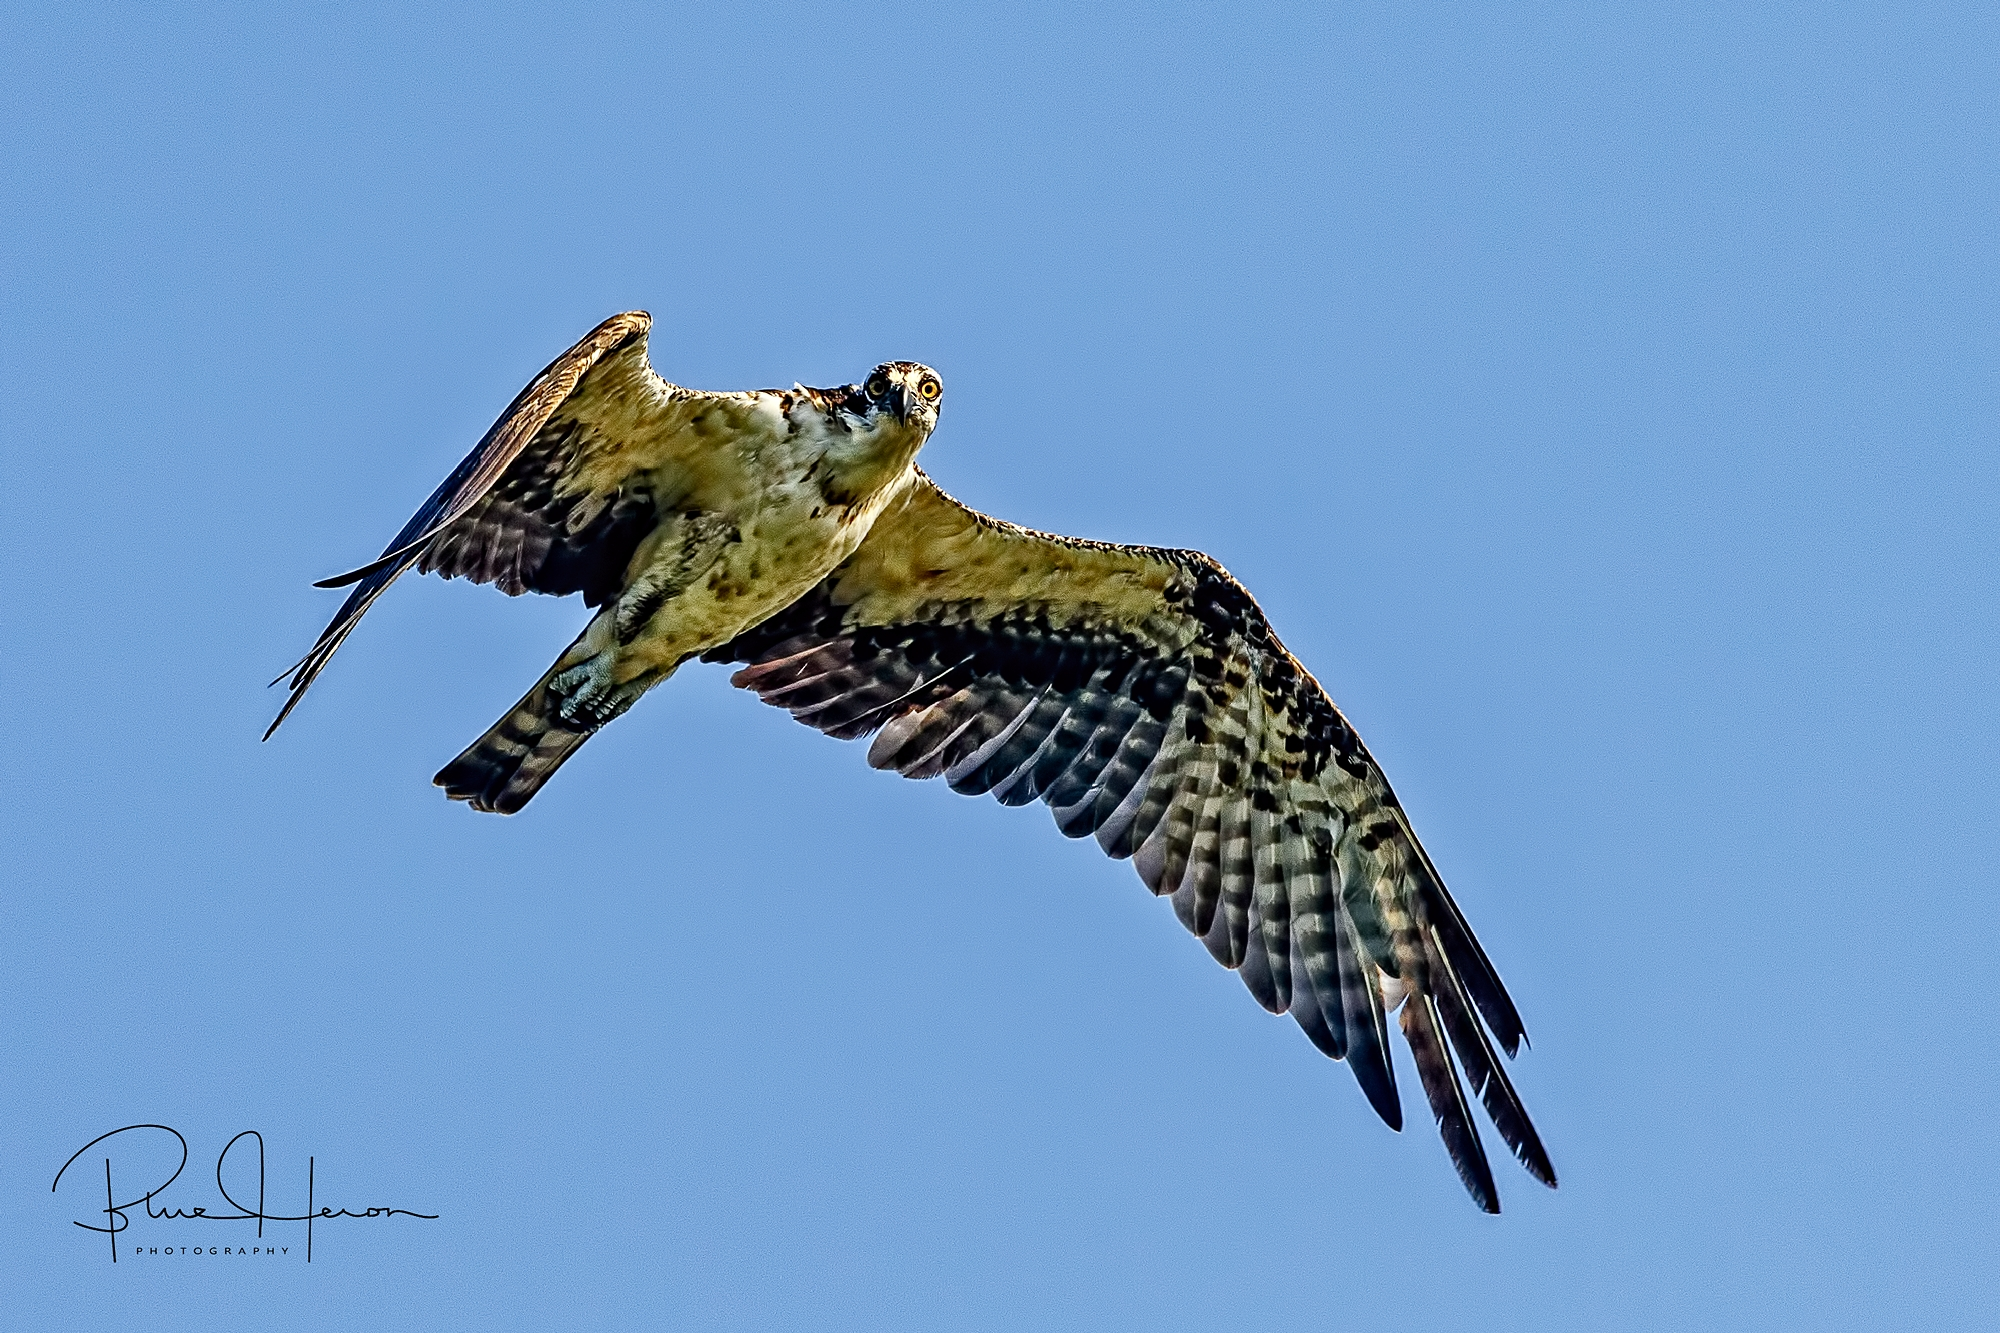 Not to worry, someone from above has His eye on me just like this ole Osprey